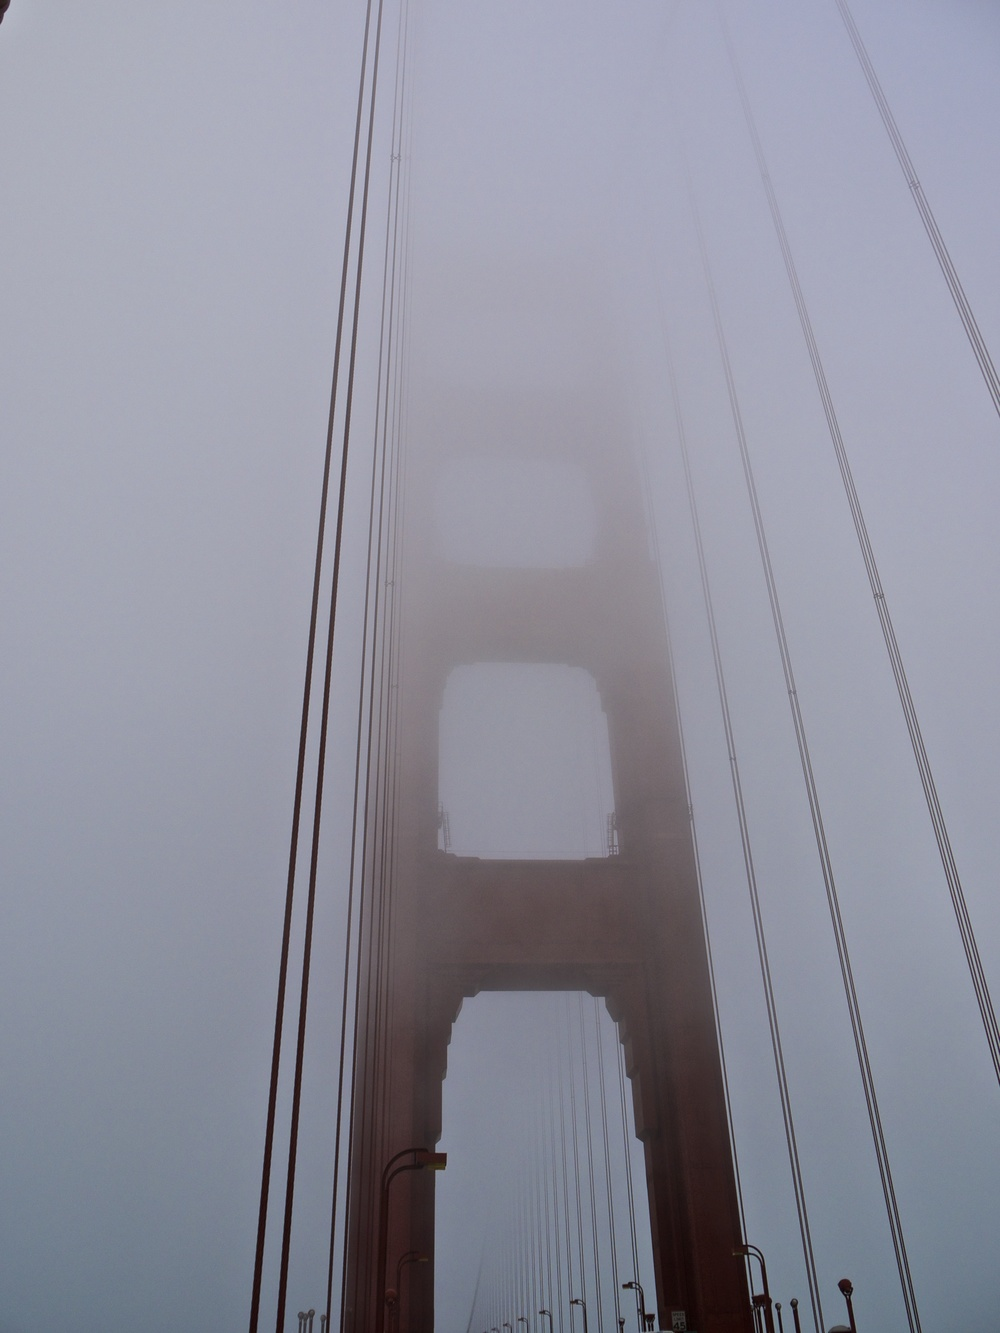 North Tower Shrouded In Fog